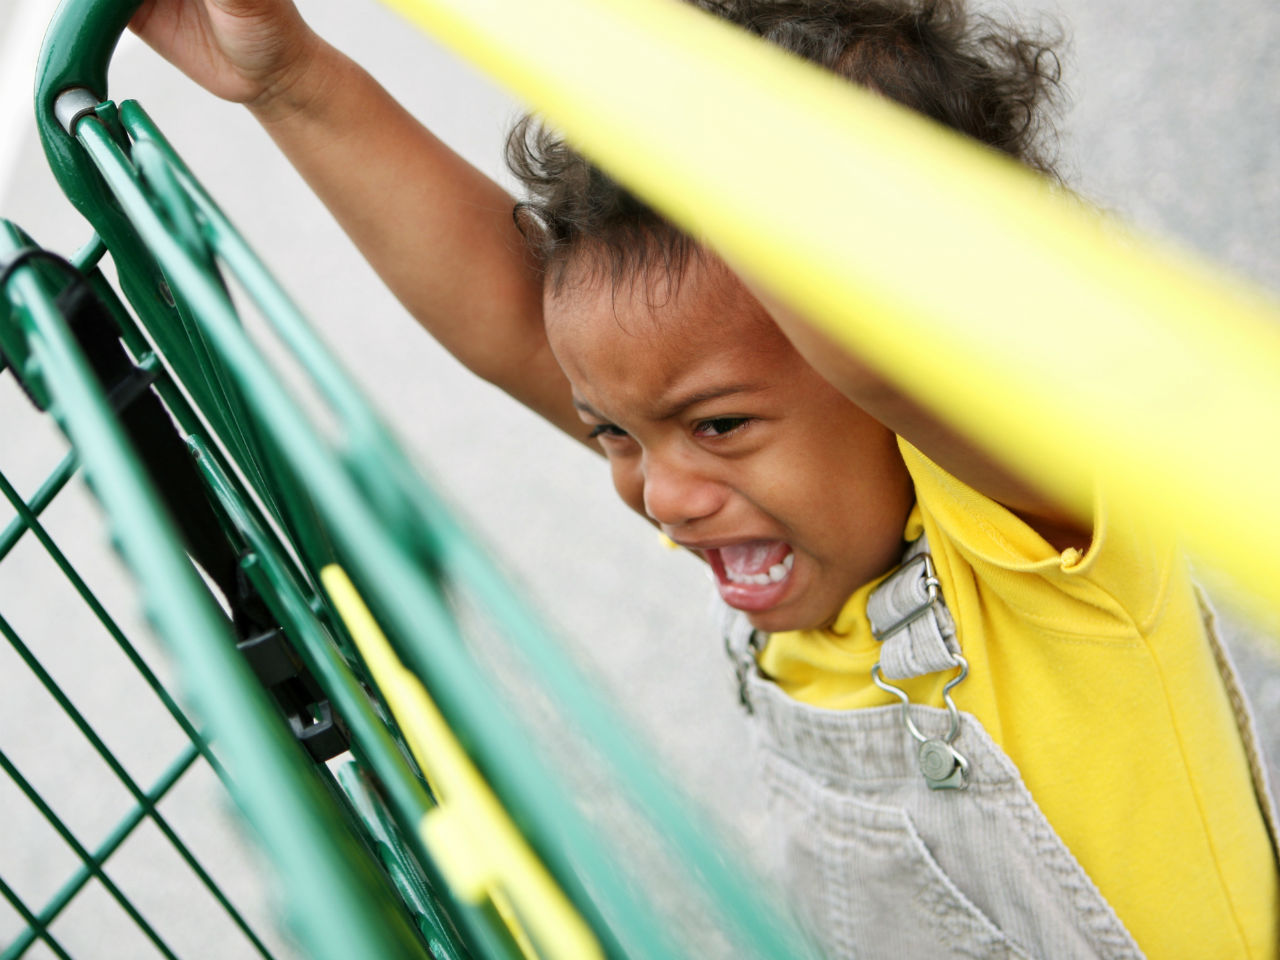 Child crying, hanging off shopping cart